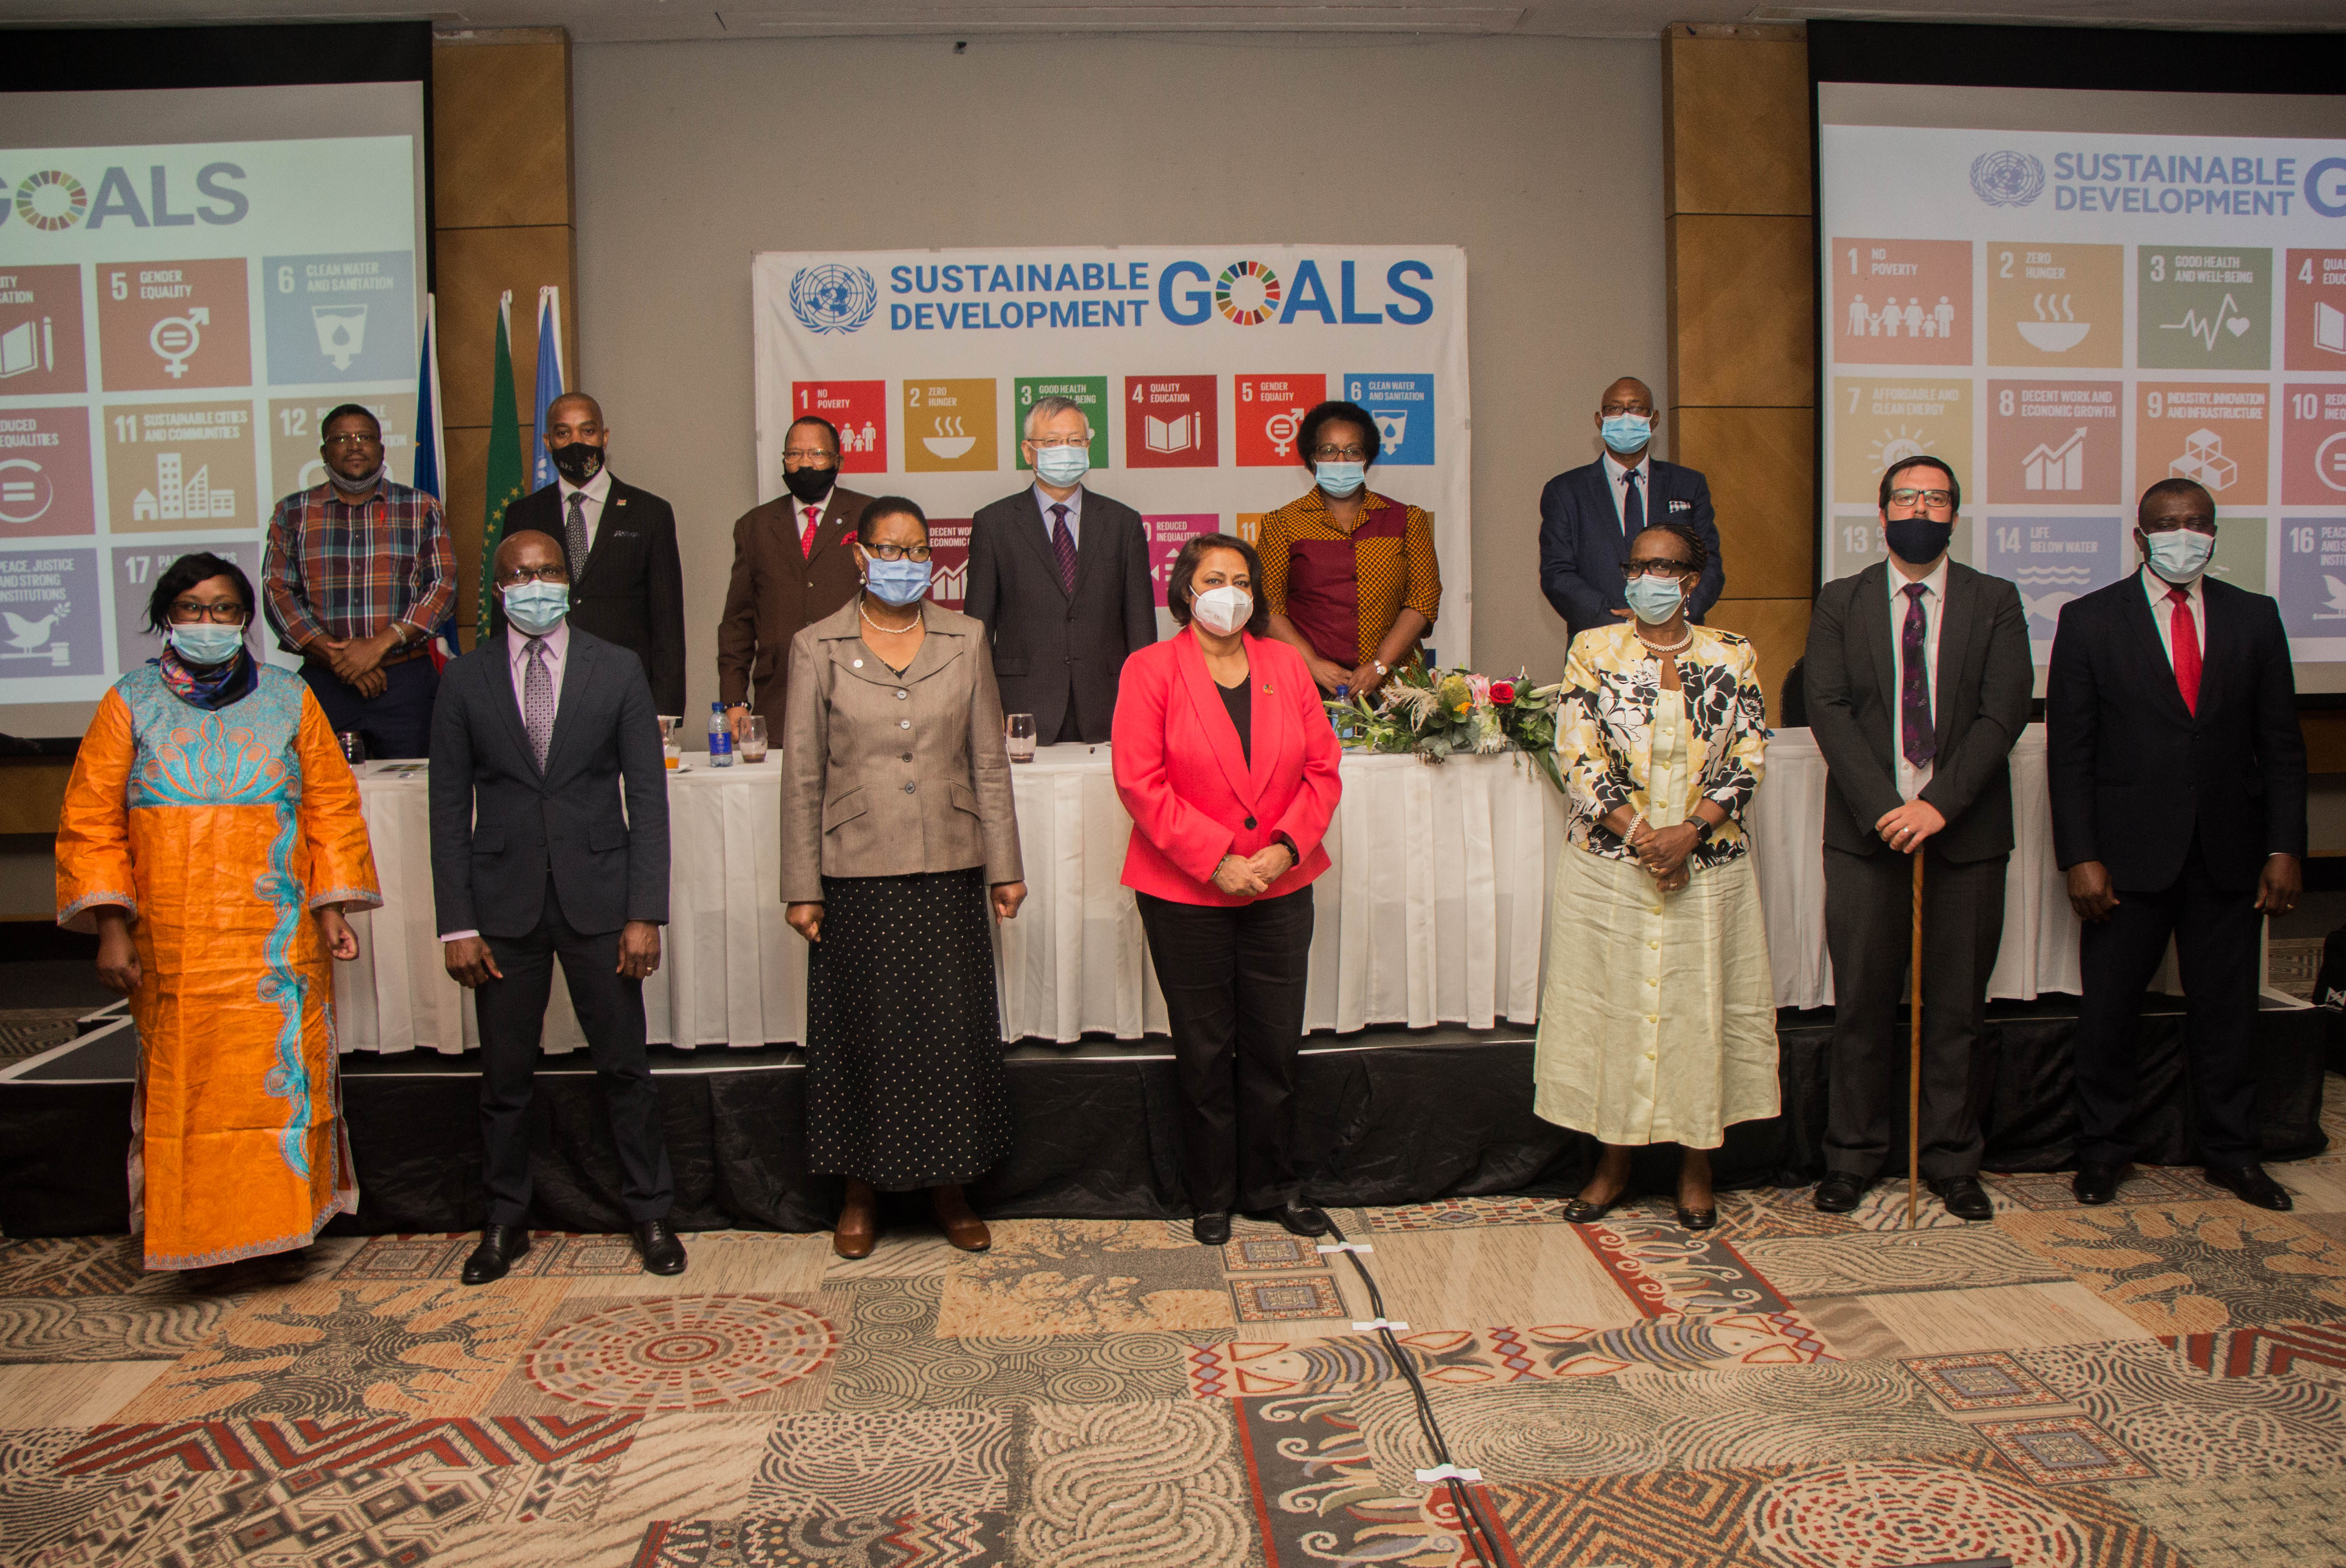 Image shows two rows of dignitaries standing infront of an image of the UN's SDGs